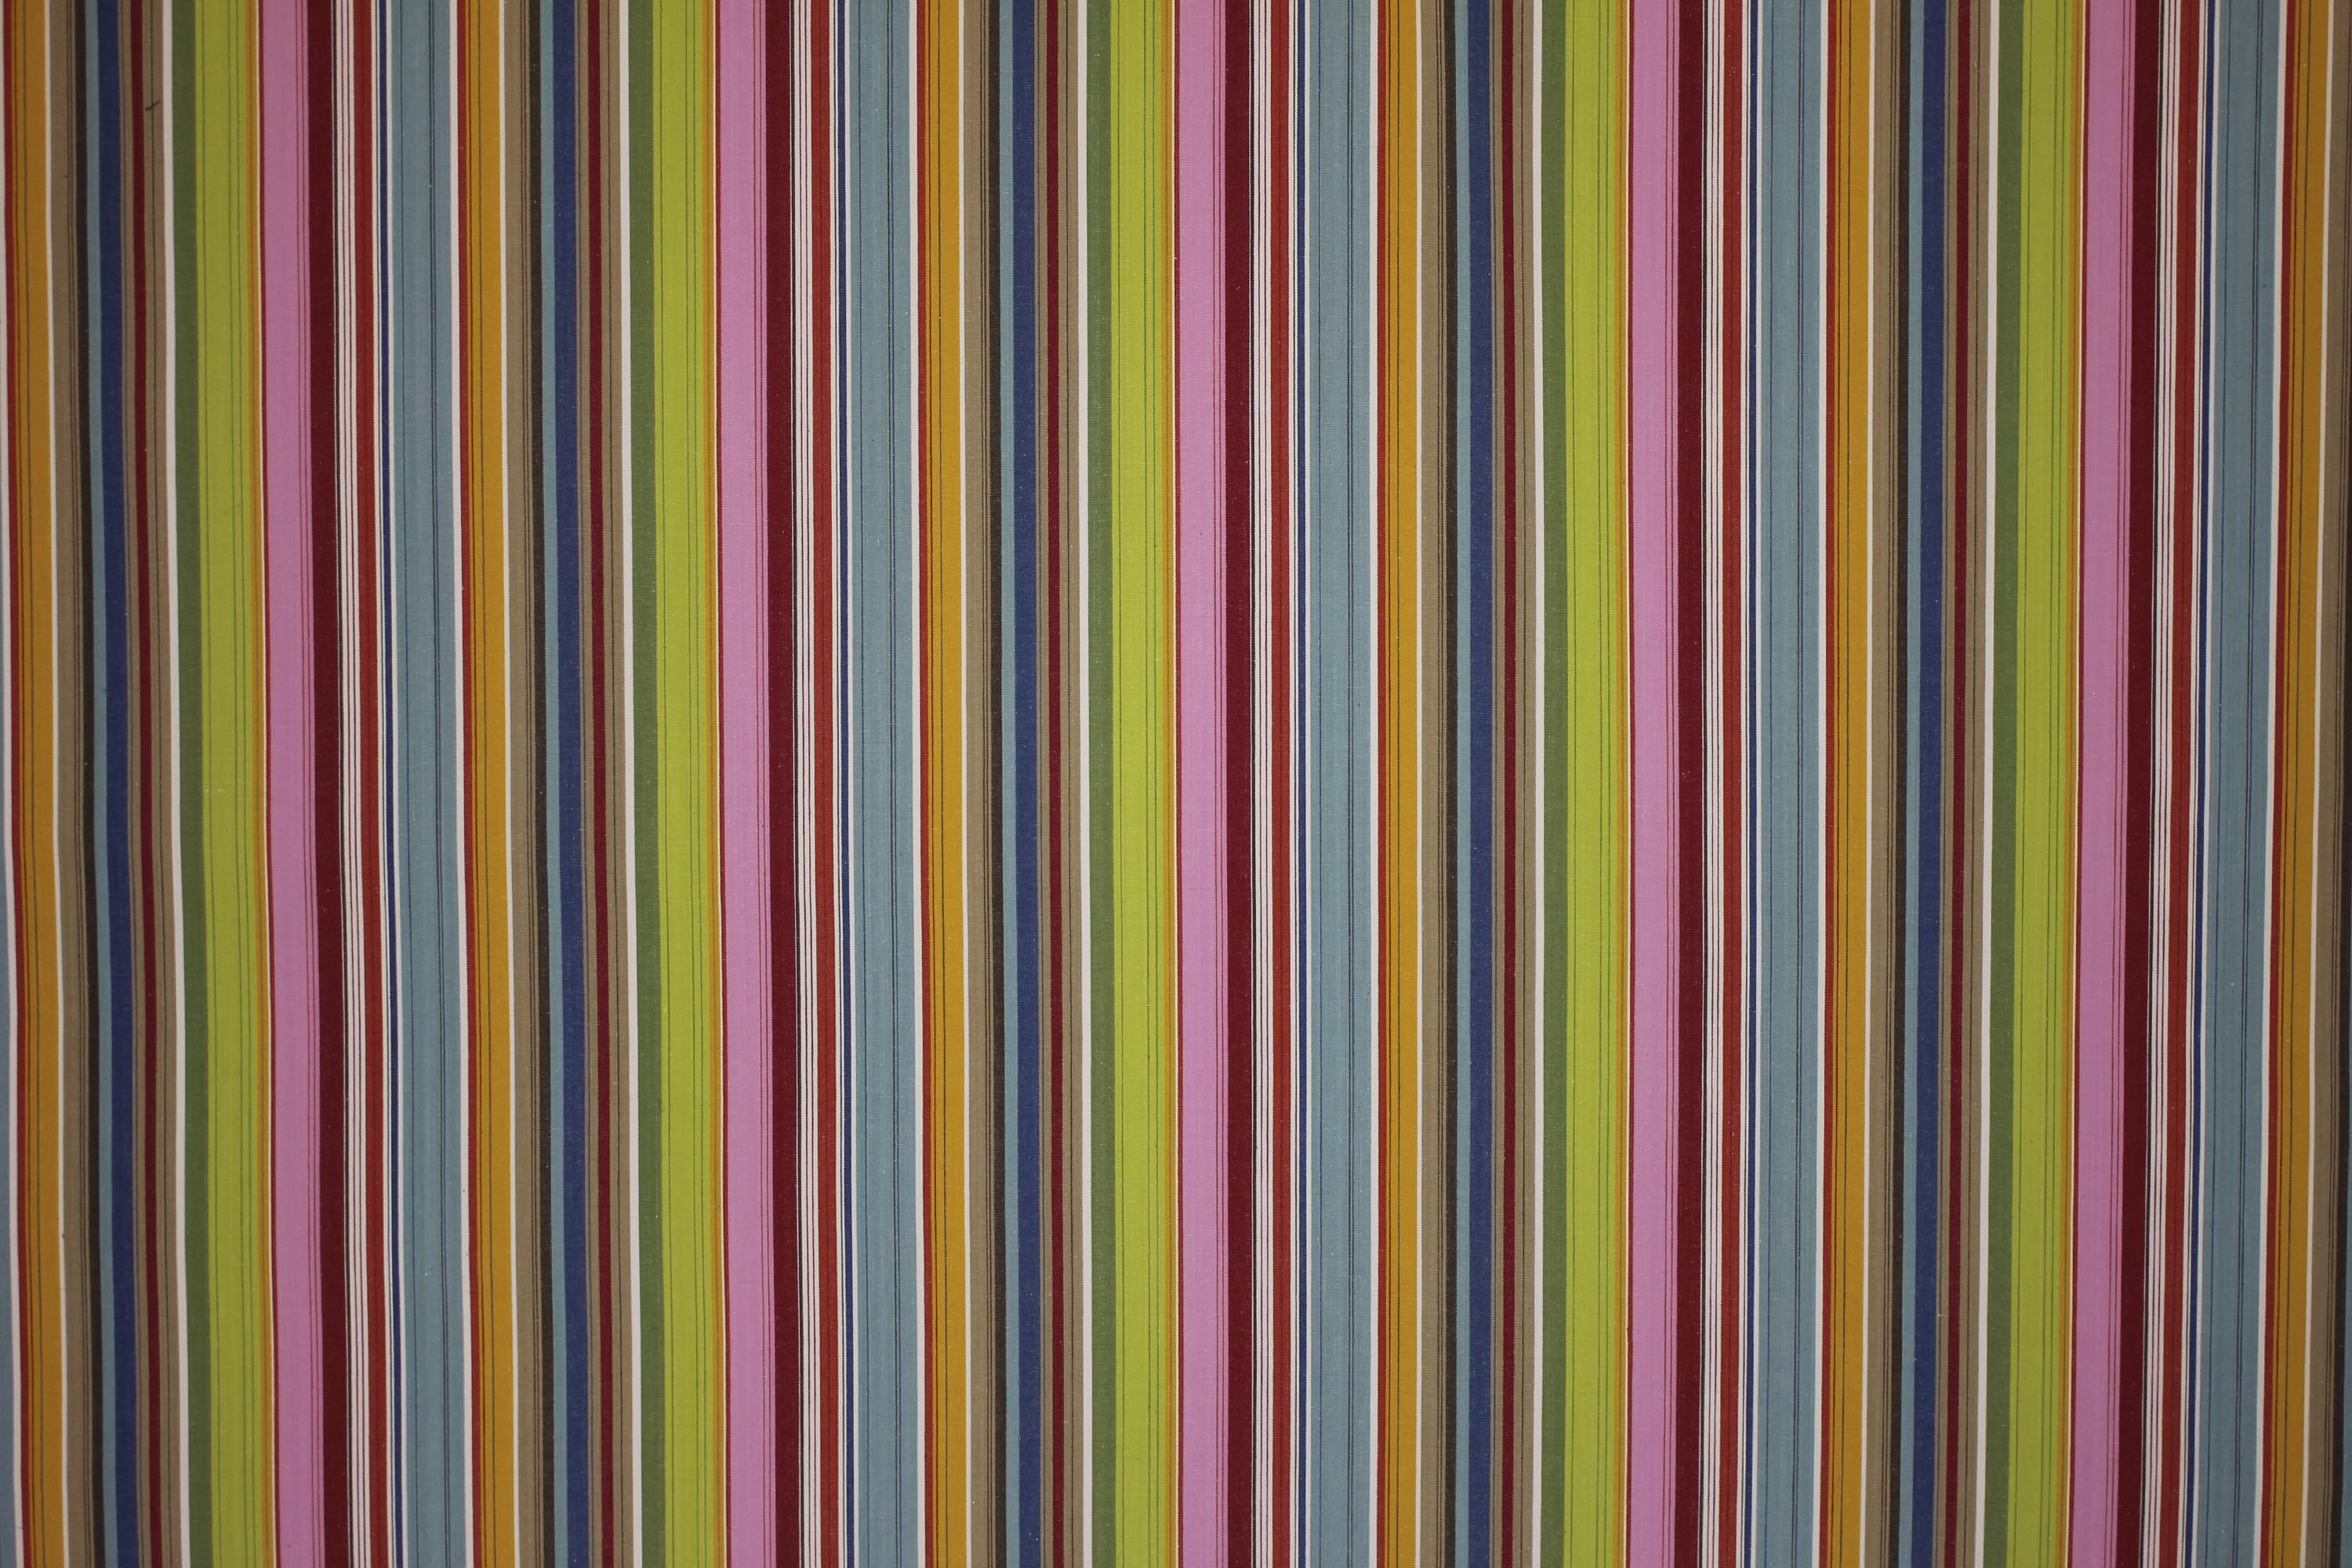 Pink Striped Fabrics | Stripe Cotton Fabrics | Striped Curtain Fabrics | Upholstery Fabrics  Parachuting Stripes